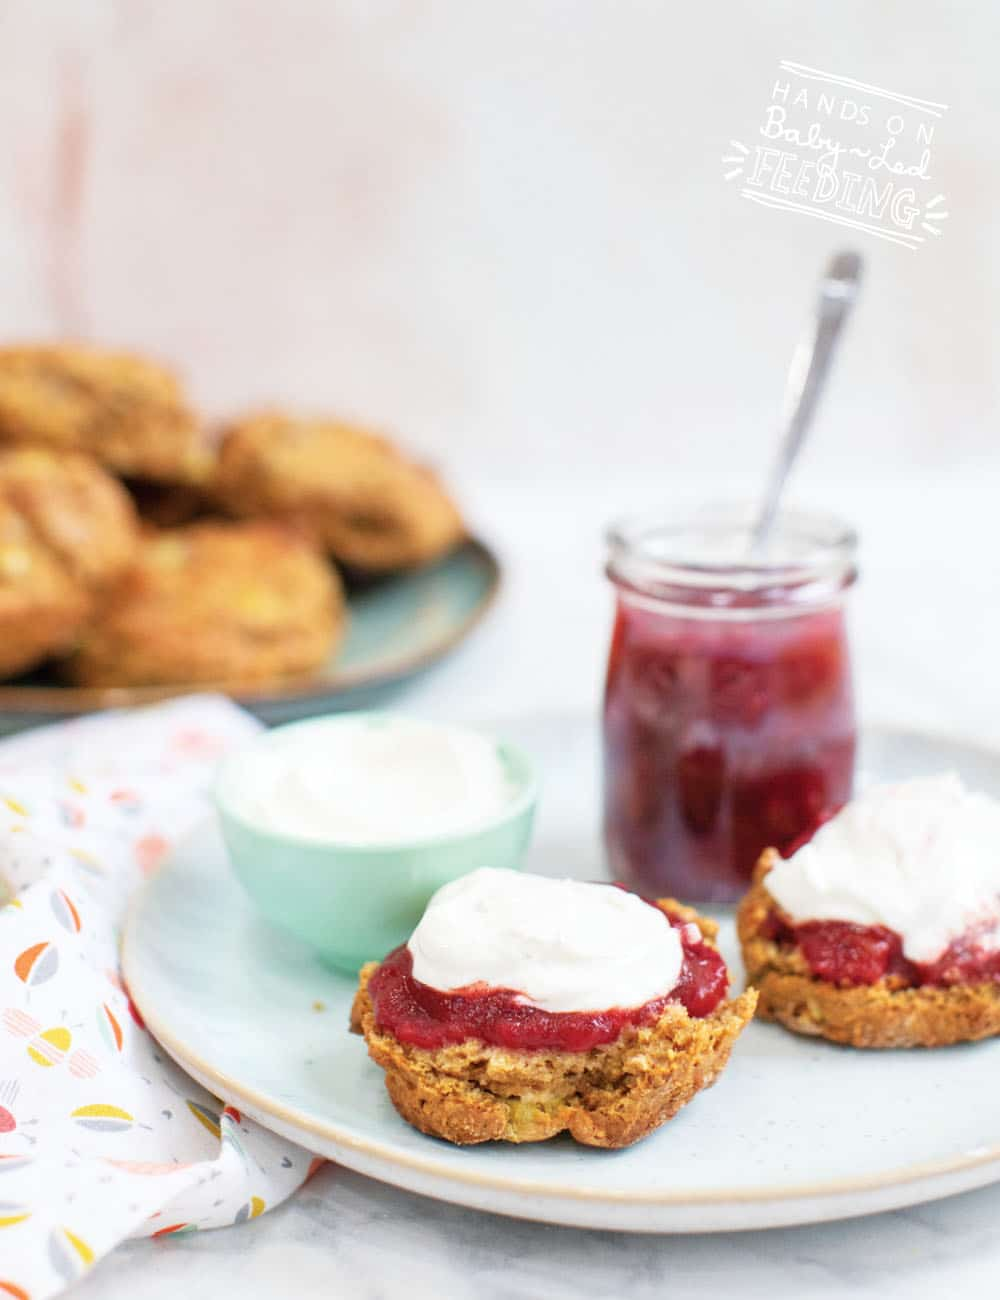 Healthy Rhubarb Scones for baby led weaning! A healthy snack idea for babies and toddlers! These healthy scones are naturally sweetened, made with whole wheat flour, and protein-rich Greek yogurt.  #babyledweaning #babyledfeeding #kidscookalong #babyrecipe #weaningrecipe #scones #rhubarb